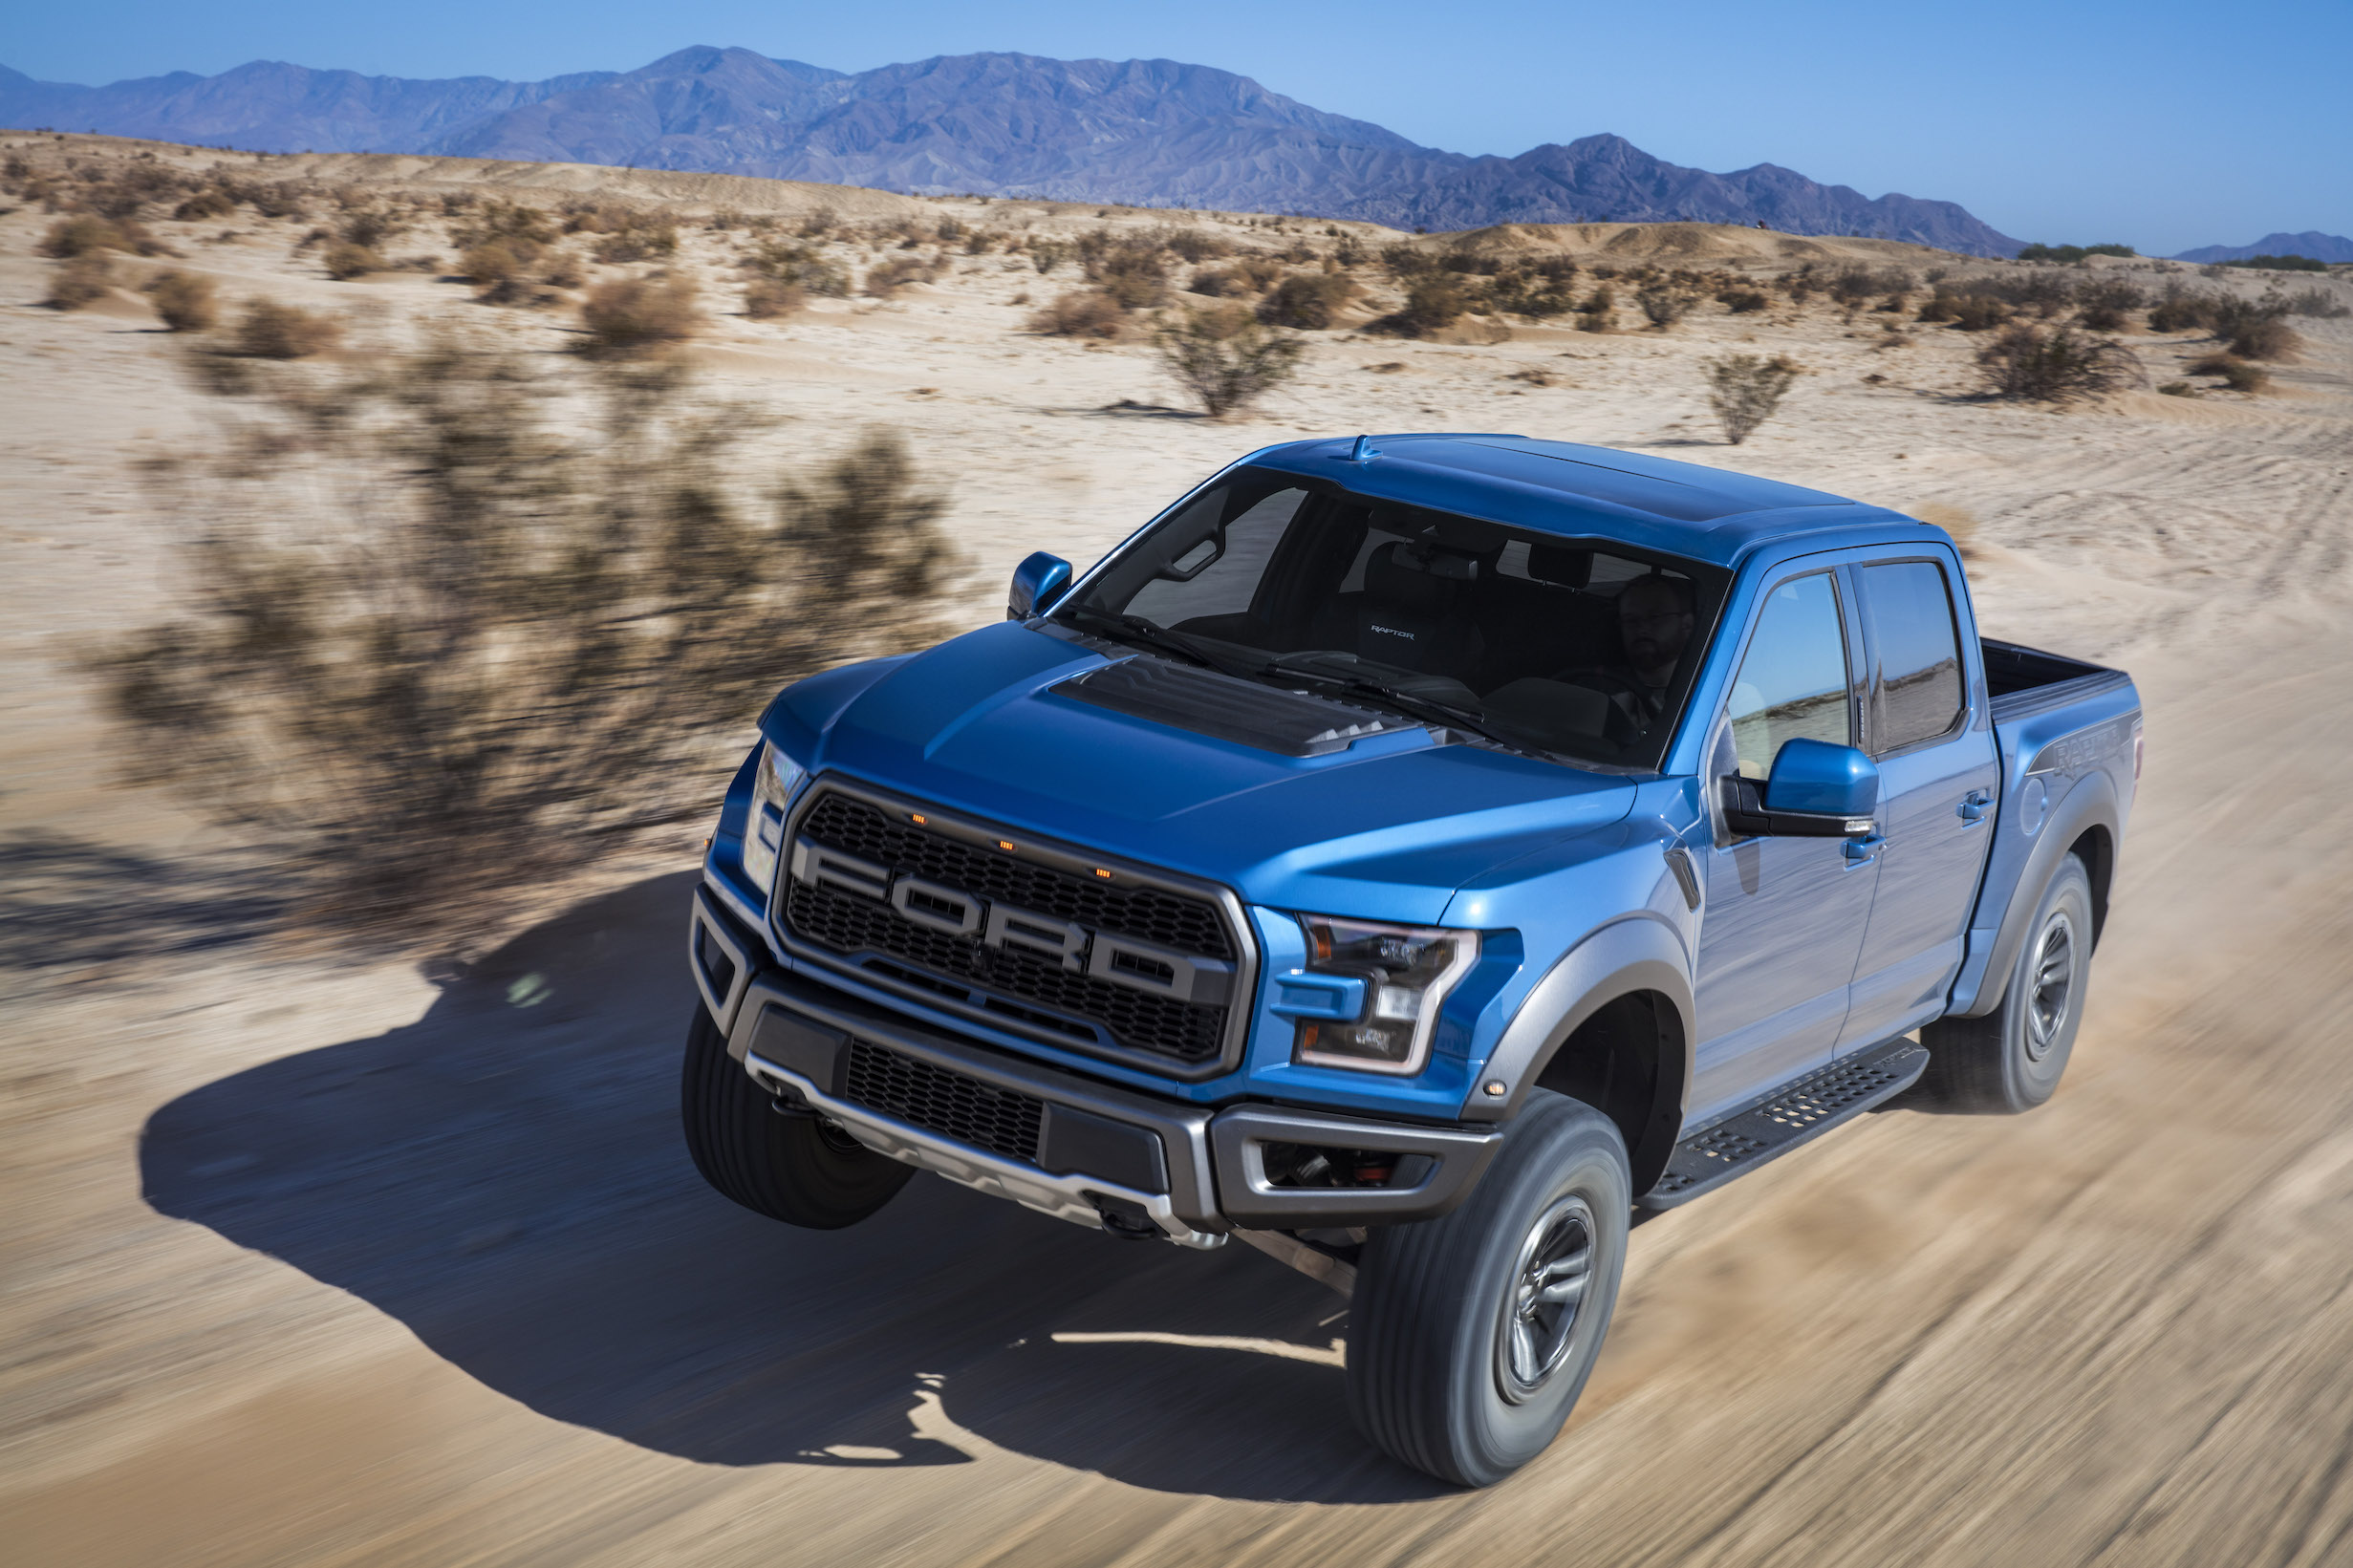 2019 Ford F-150 Raptor on dirt trail off road